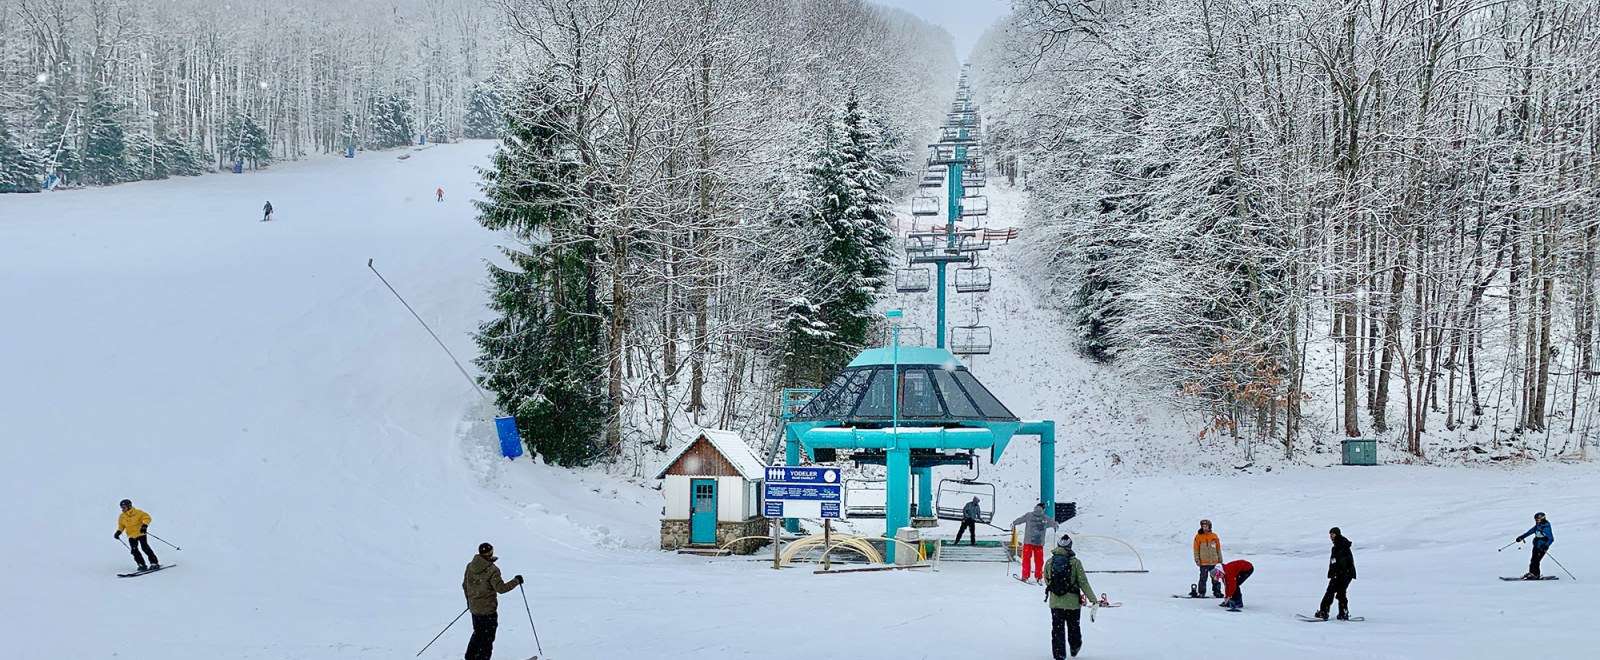 More lifts and slopes opening this weekend